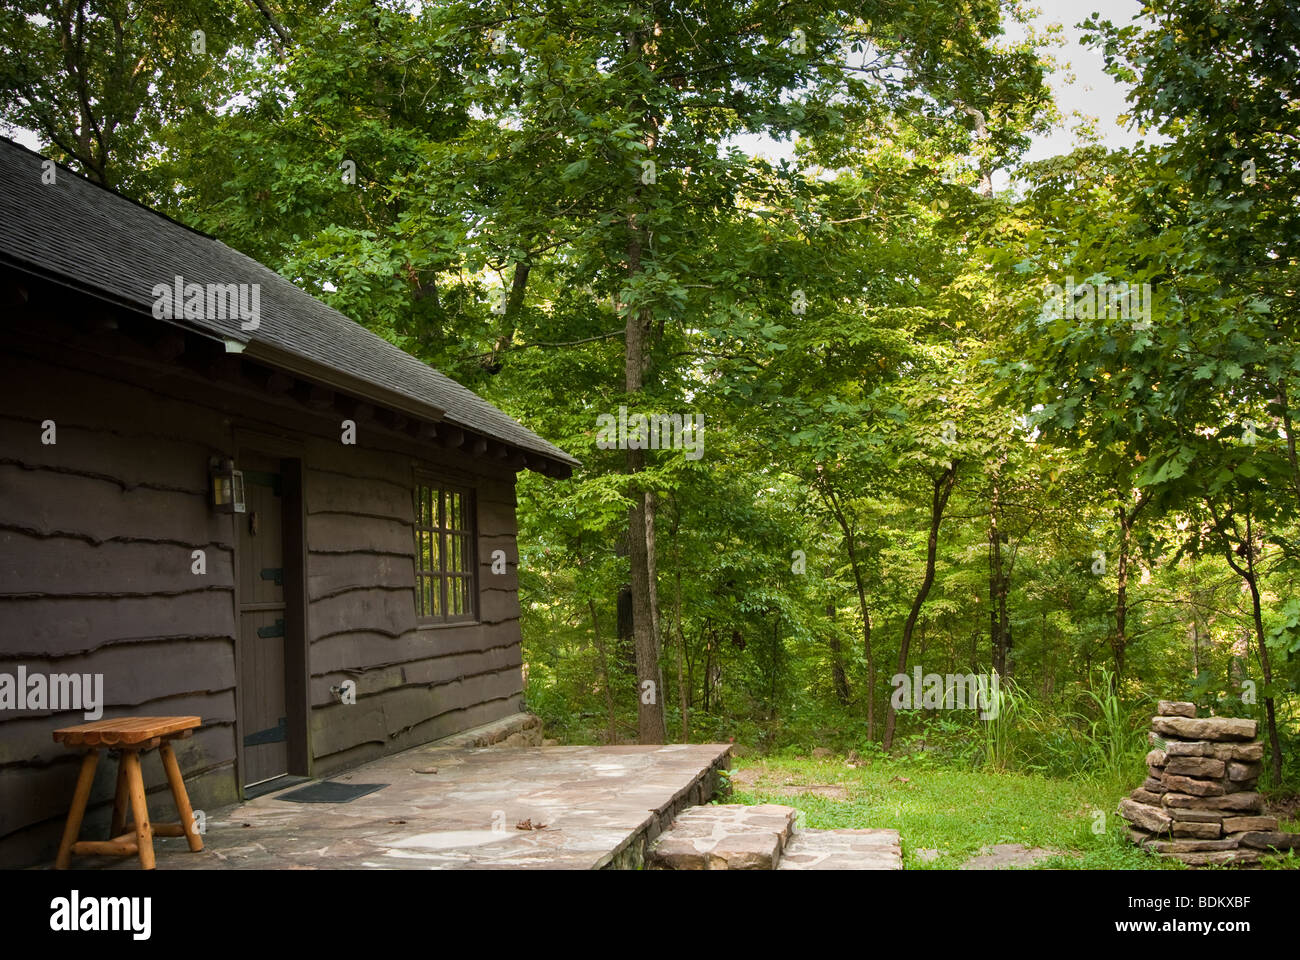 Very Impressive portraiture of Stock Photo Rustic cabin number 5 of 18 at Devil's Den State Park in  with #4C5F18 color and 1300x960 pixels